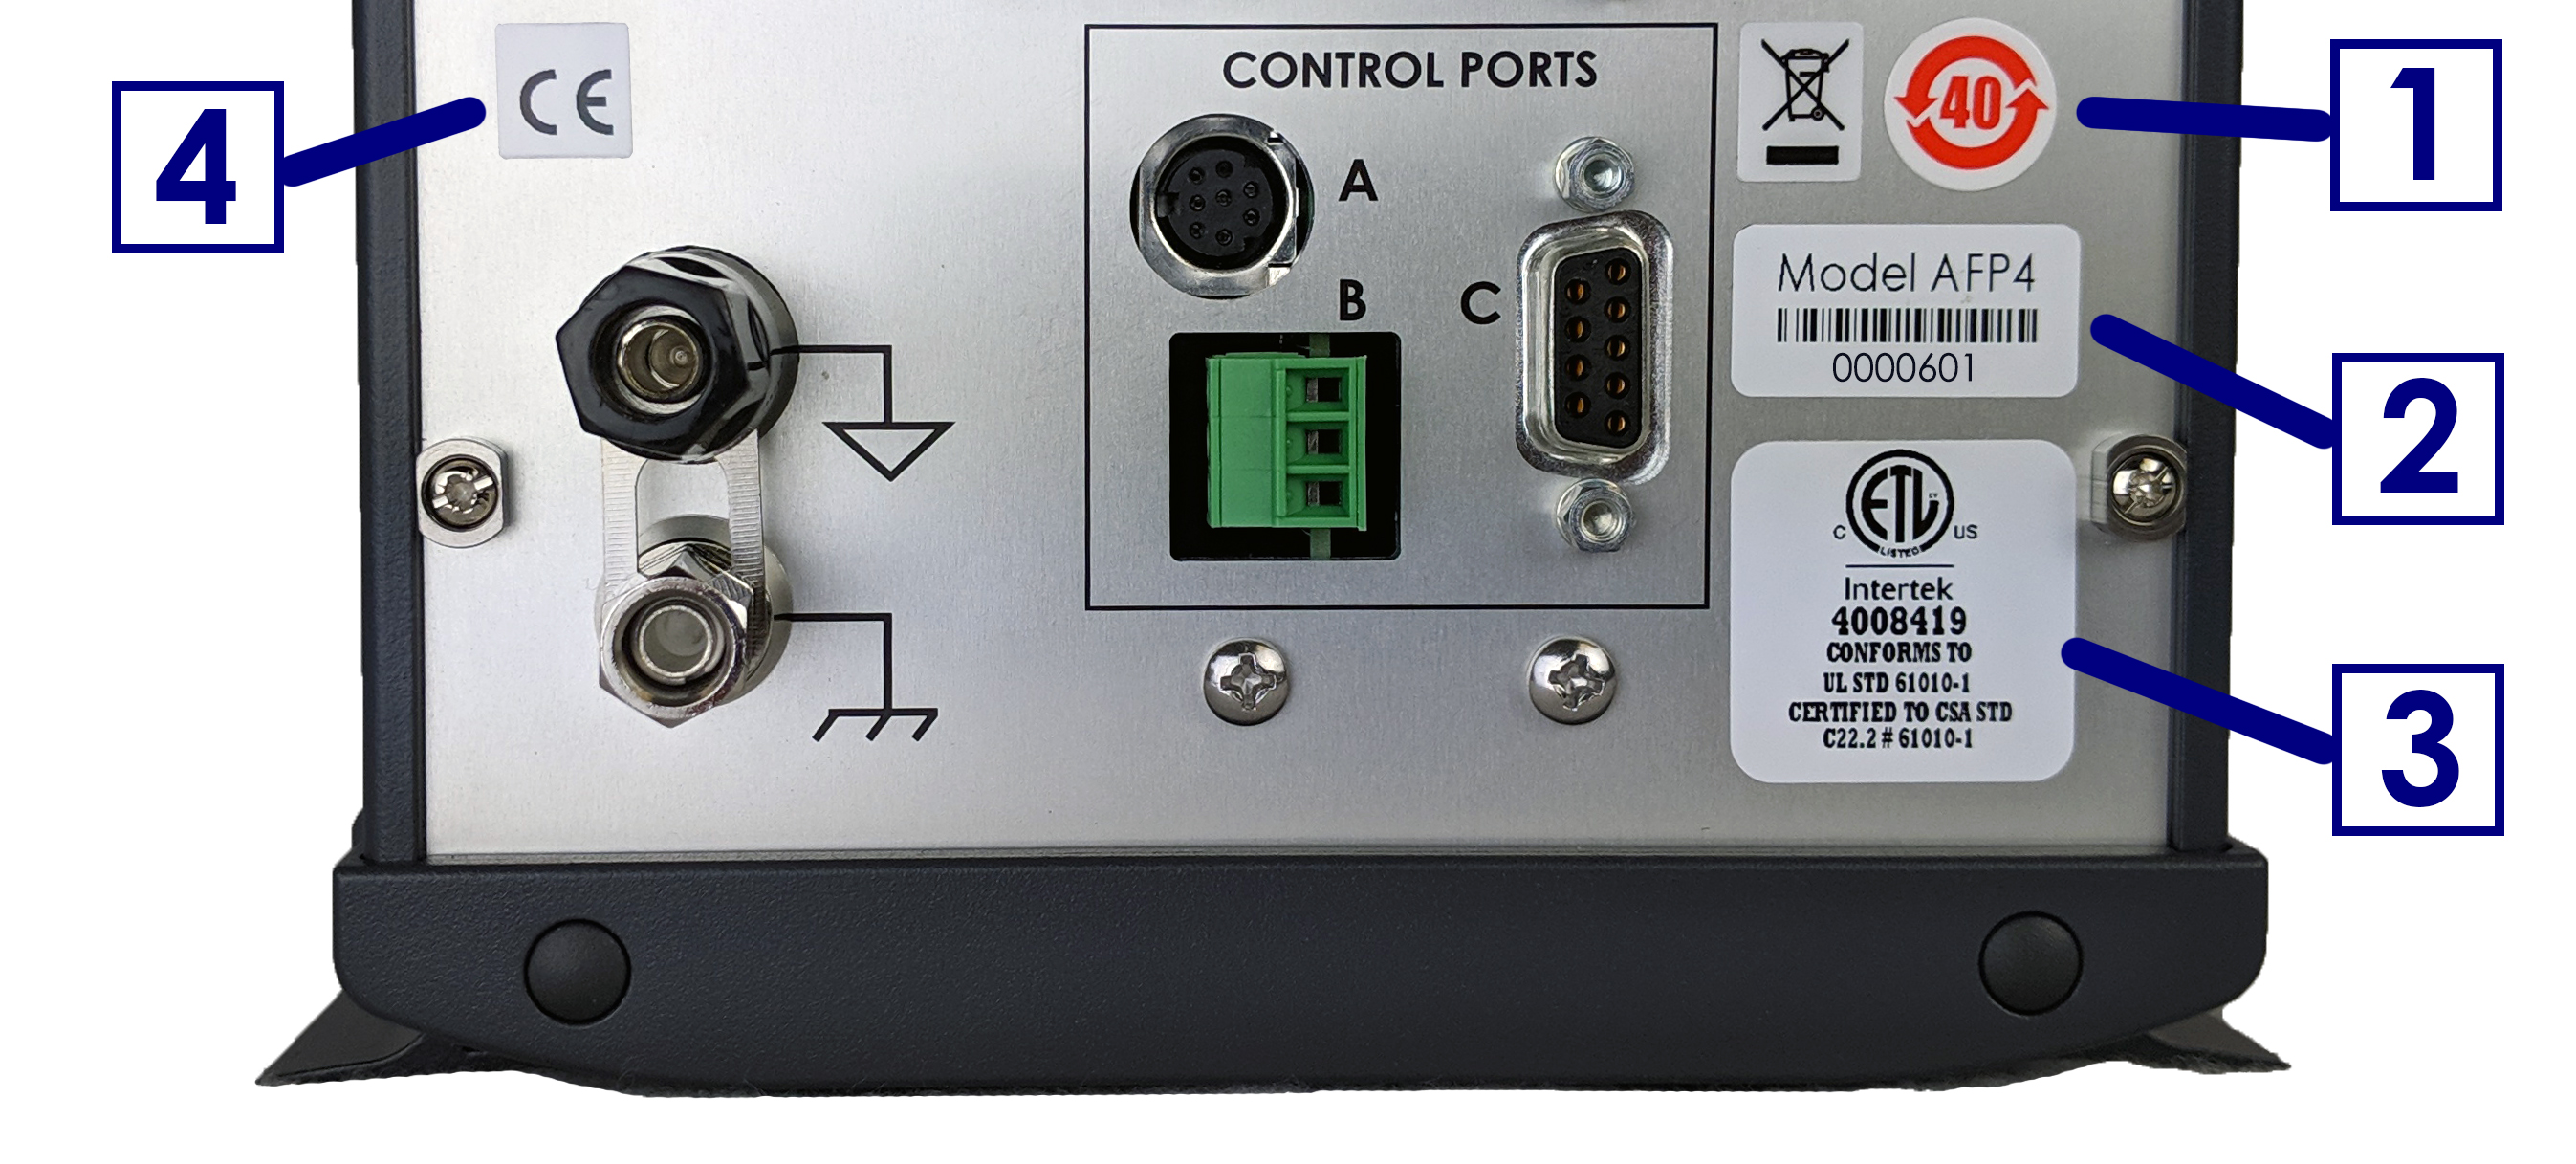 WaveDriver 40 Instrument Markings